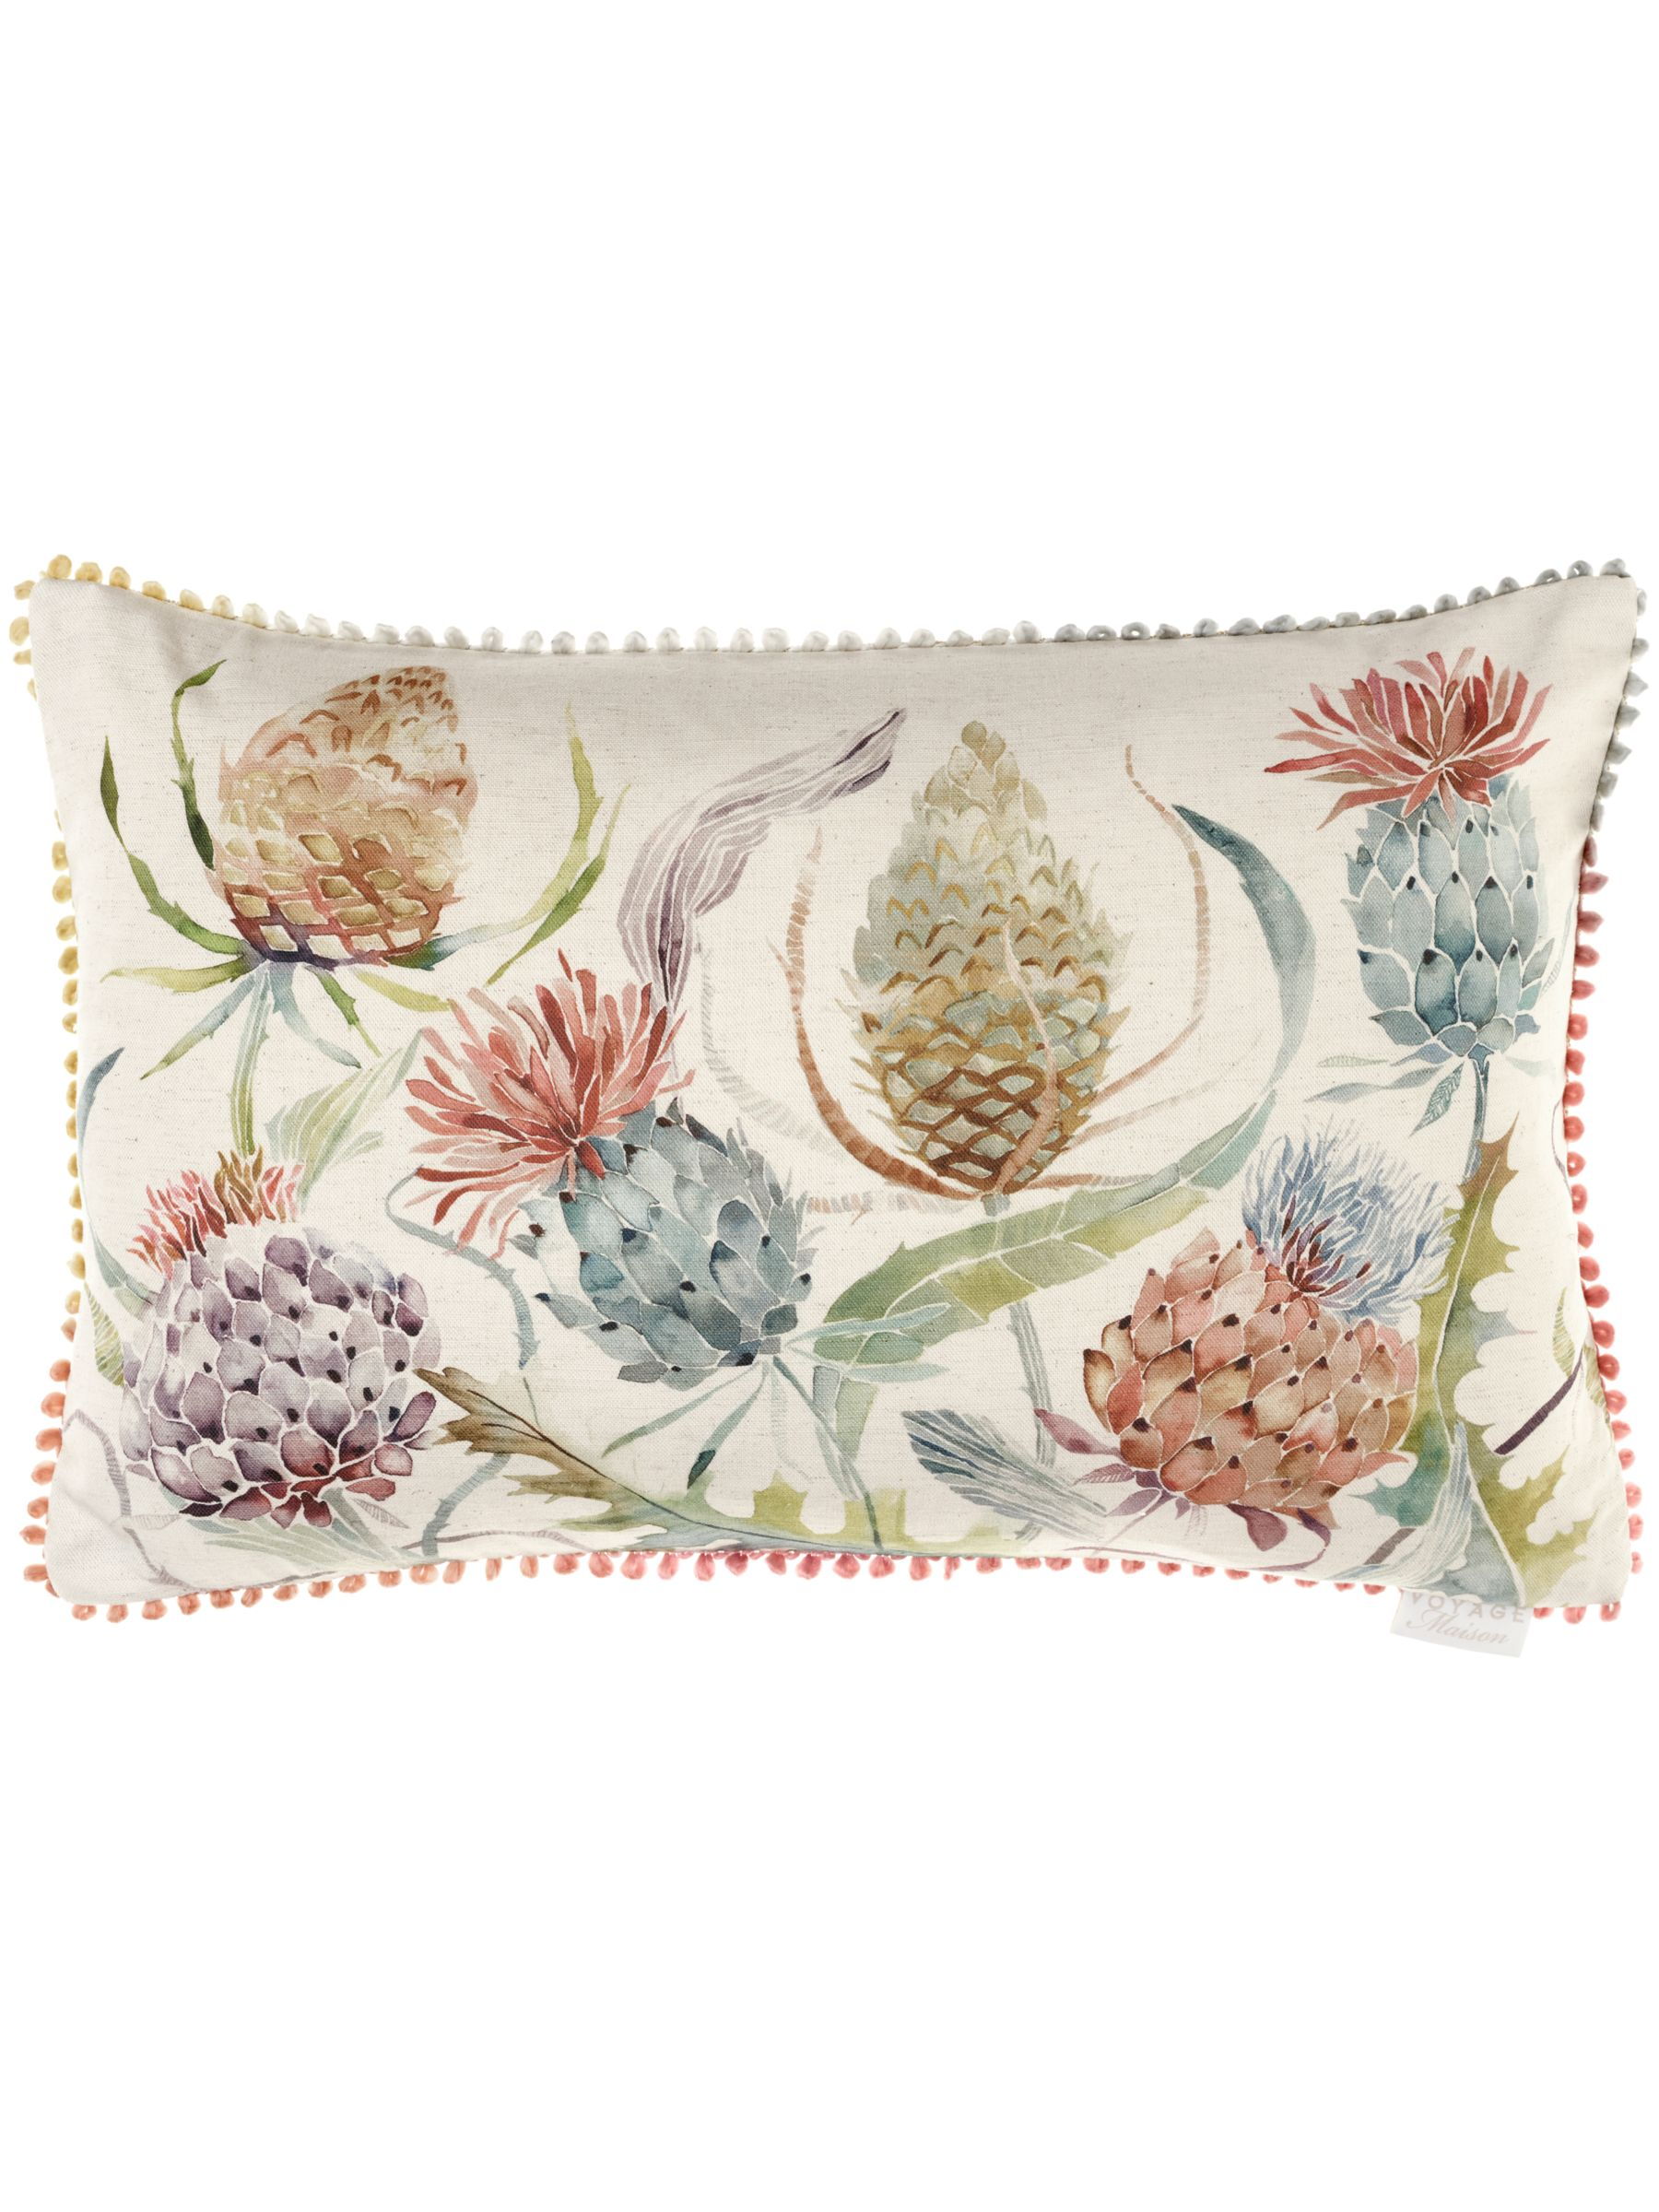 Voyage Voyage Thistle Cushion, Autumn